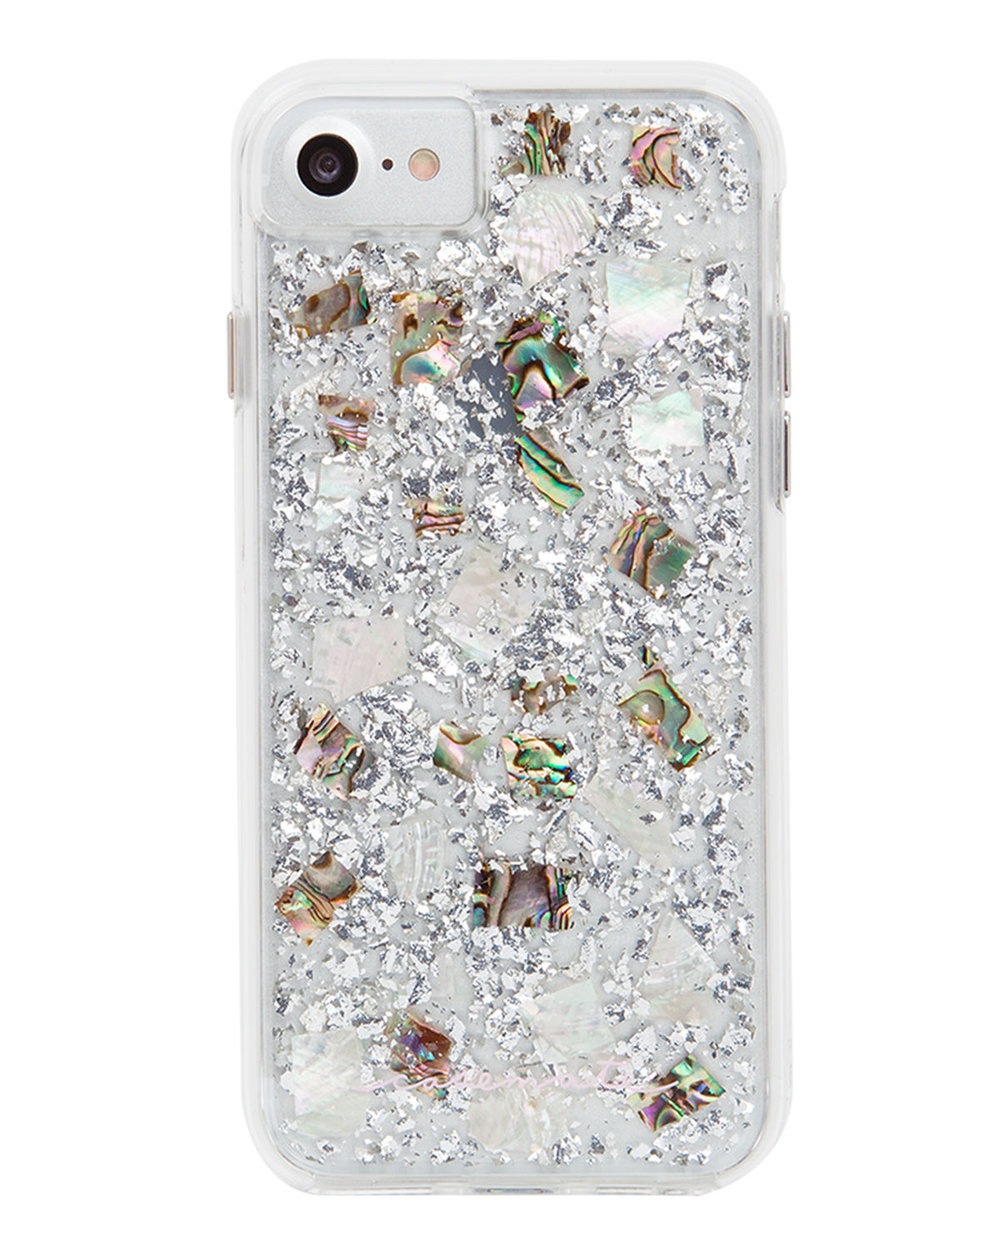 karat-iphone-7-case.jpg